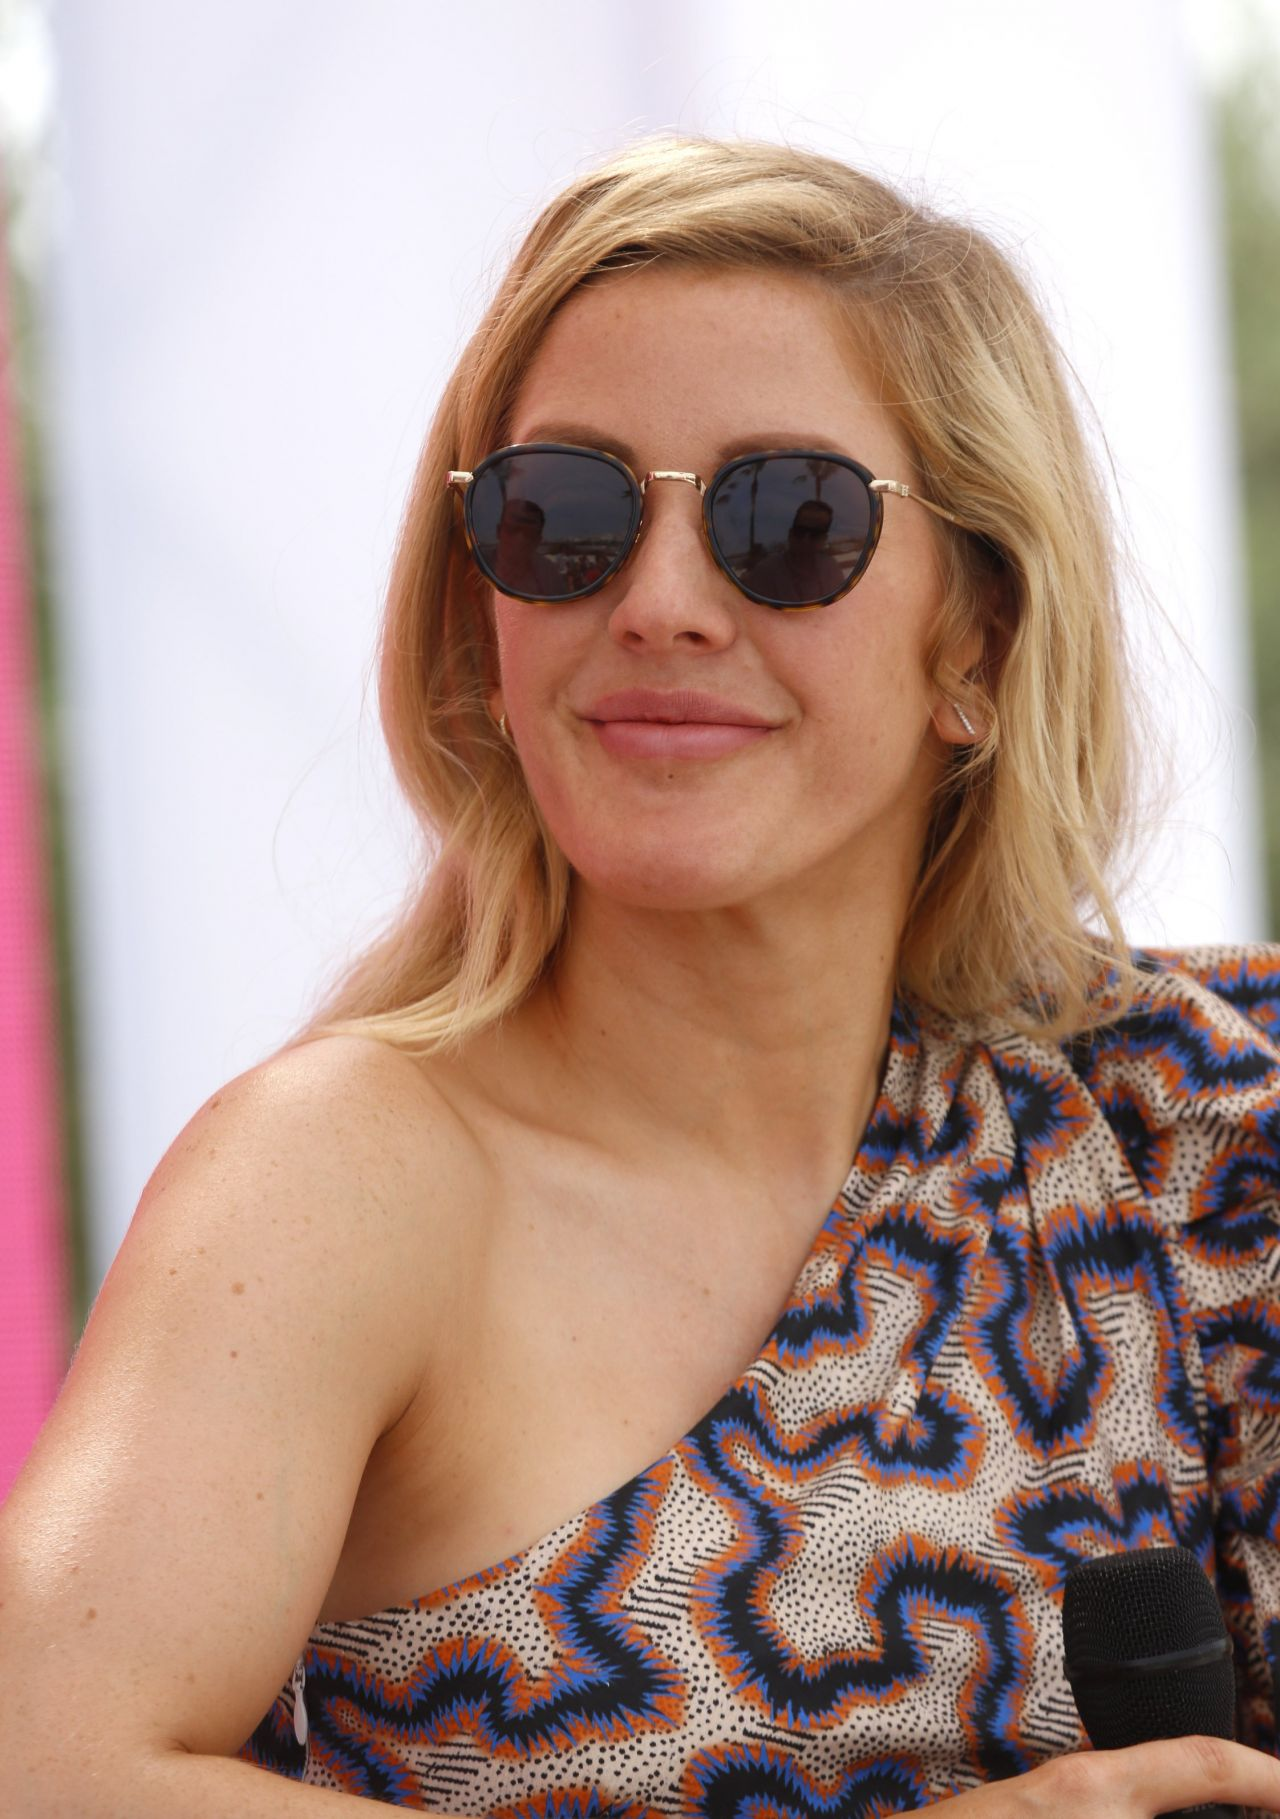 Ellie Goulding At Cannes Lions Entertainment In France 06